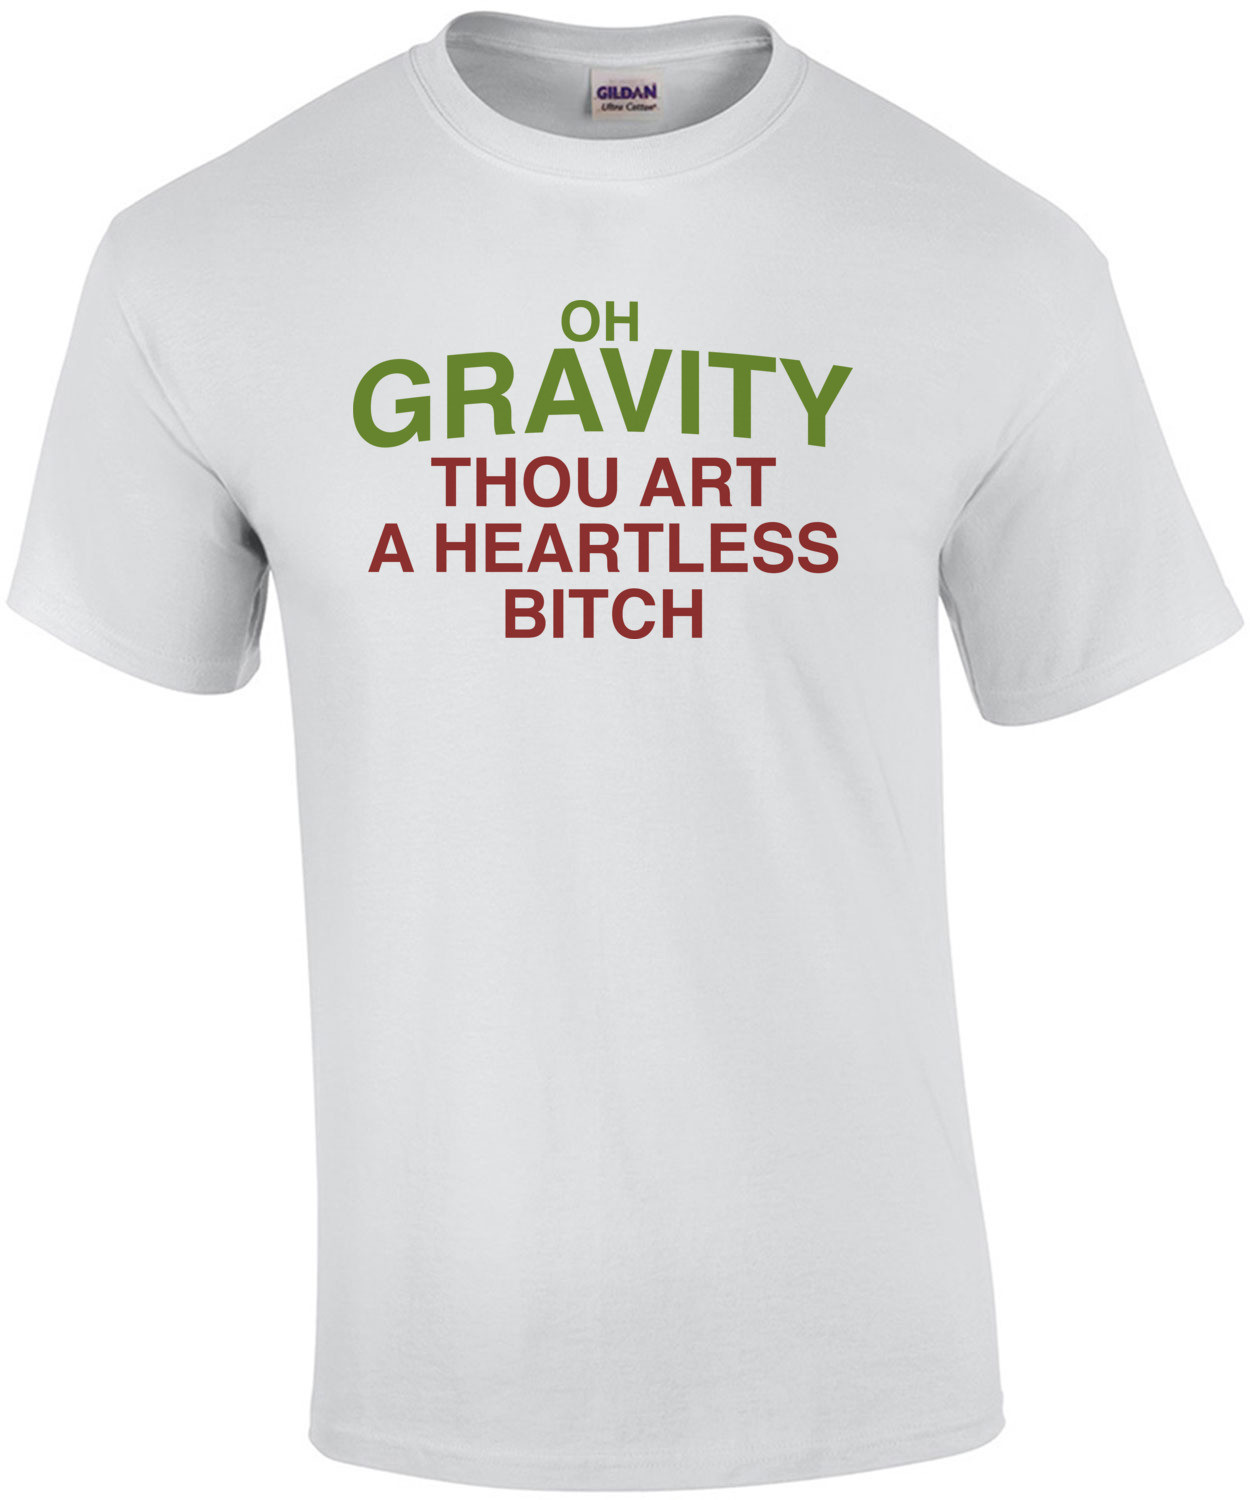 Oh Gravity, Thou Art a Heartless Bitch T-Shirt